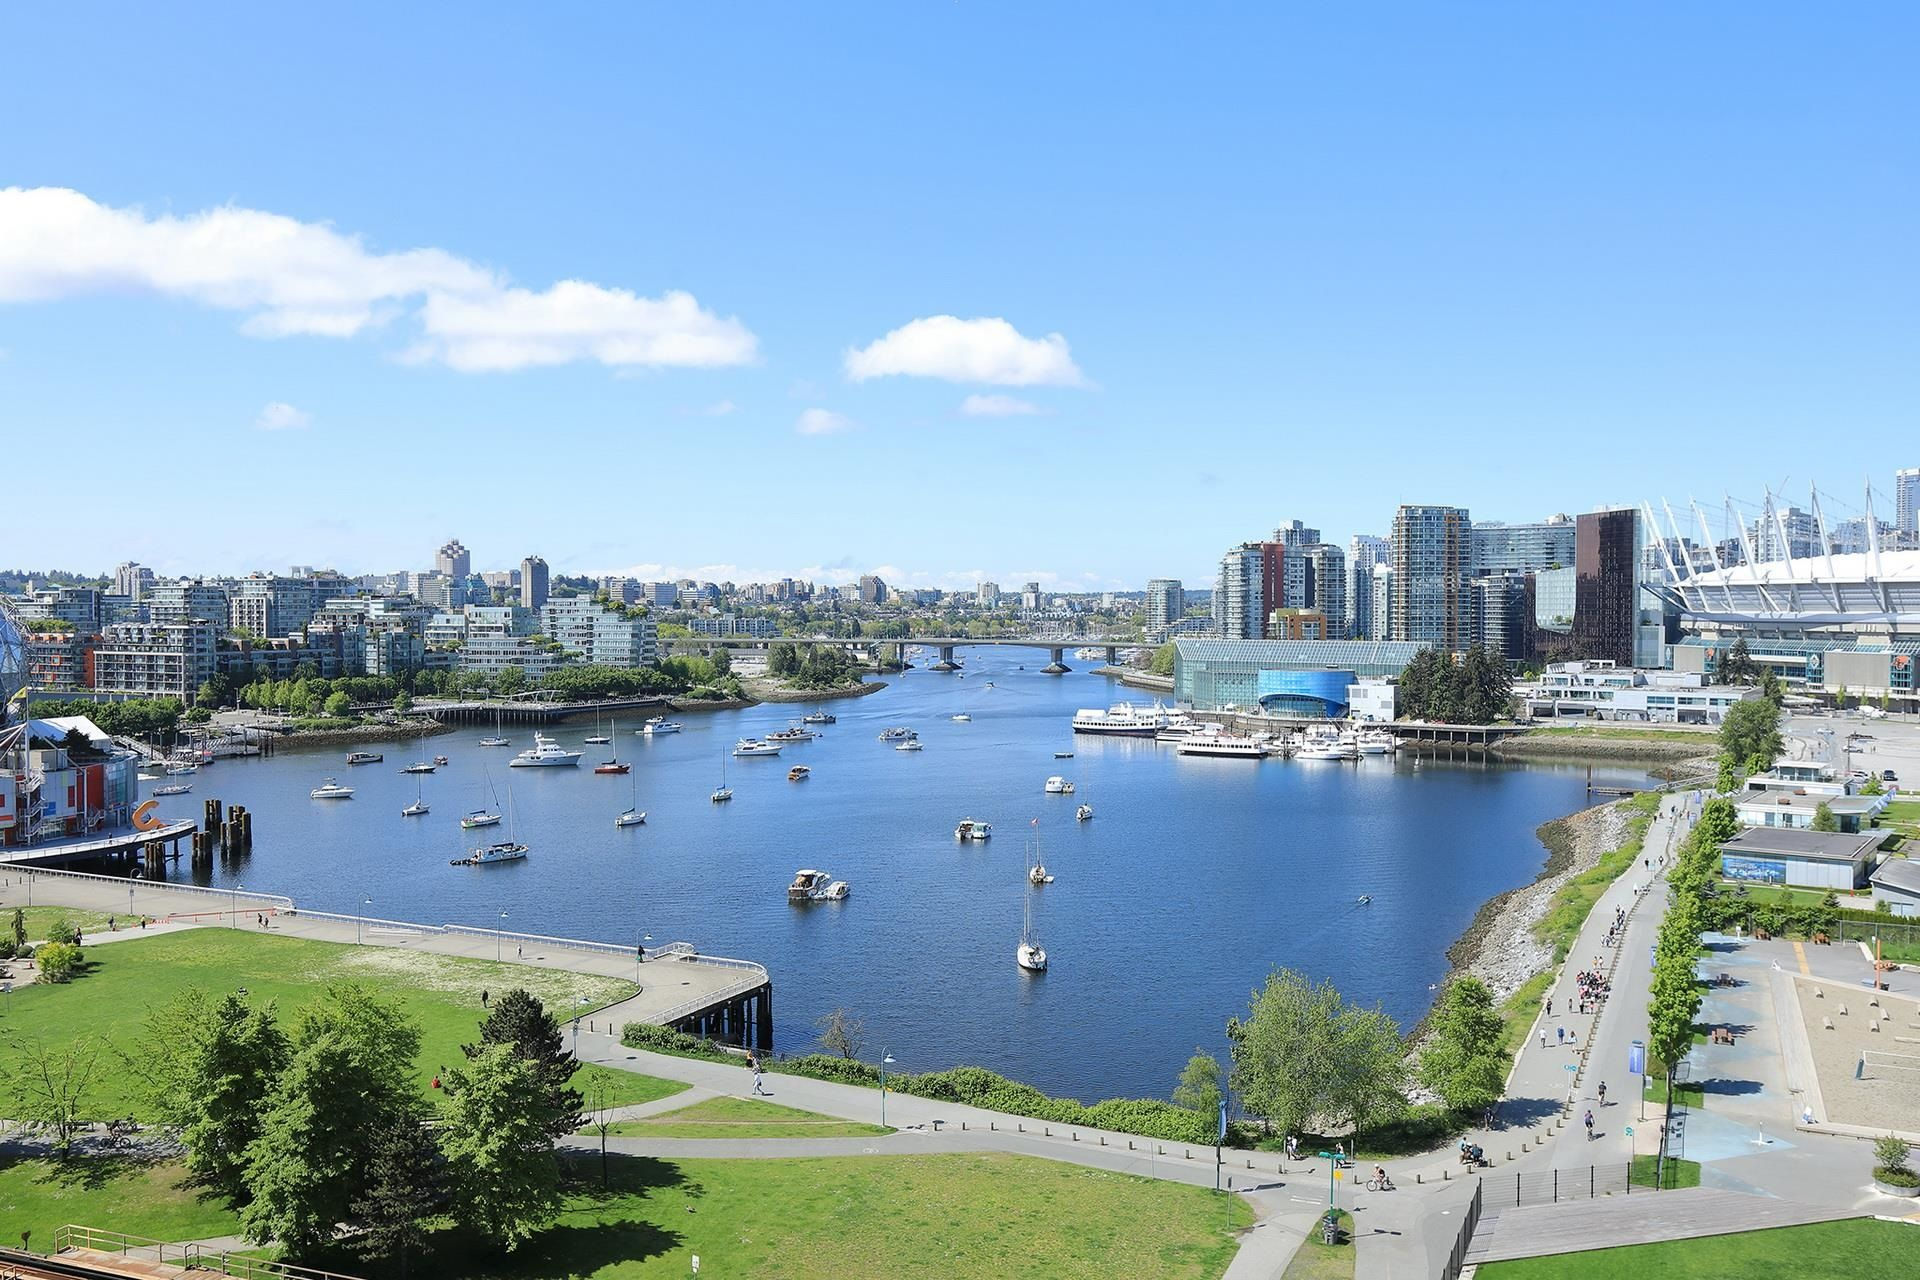 """Main Photo: 1405 120 MILROSS Avenue in Vancouver: Downtown VE Condo for sale in """"THE BRIGHTON BY BOSA"""" (Vancouver East)  : MLS®# R2617485"""